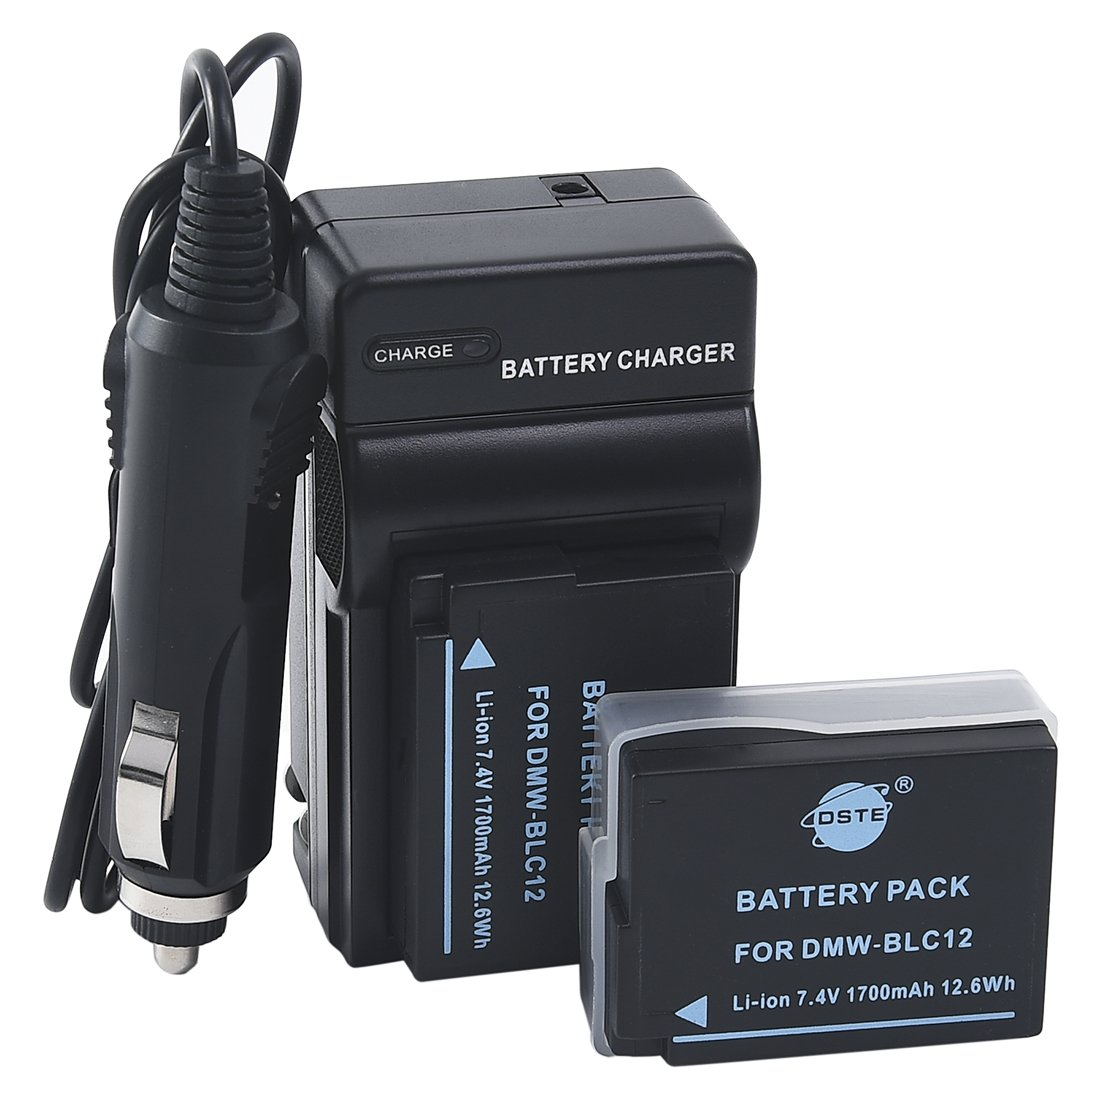 DSTE 2x DMW-BLC12 Battery + DC114 Travel and Car Charger Adapter for Panasonic Lumix DMC-G5 G6 G7 GH2 GX8 FZ200 DMC-FZ2500 DMC-FZ2000 Leica Q Camera as DMW-BLC12E BP-DC12E